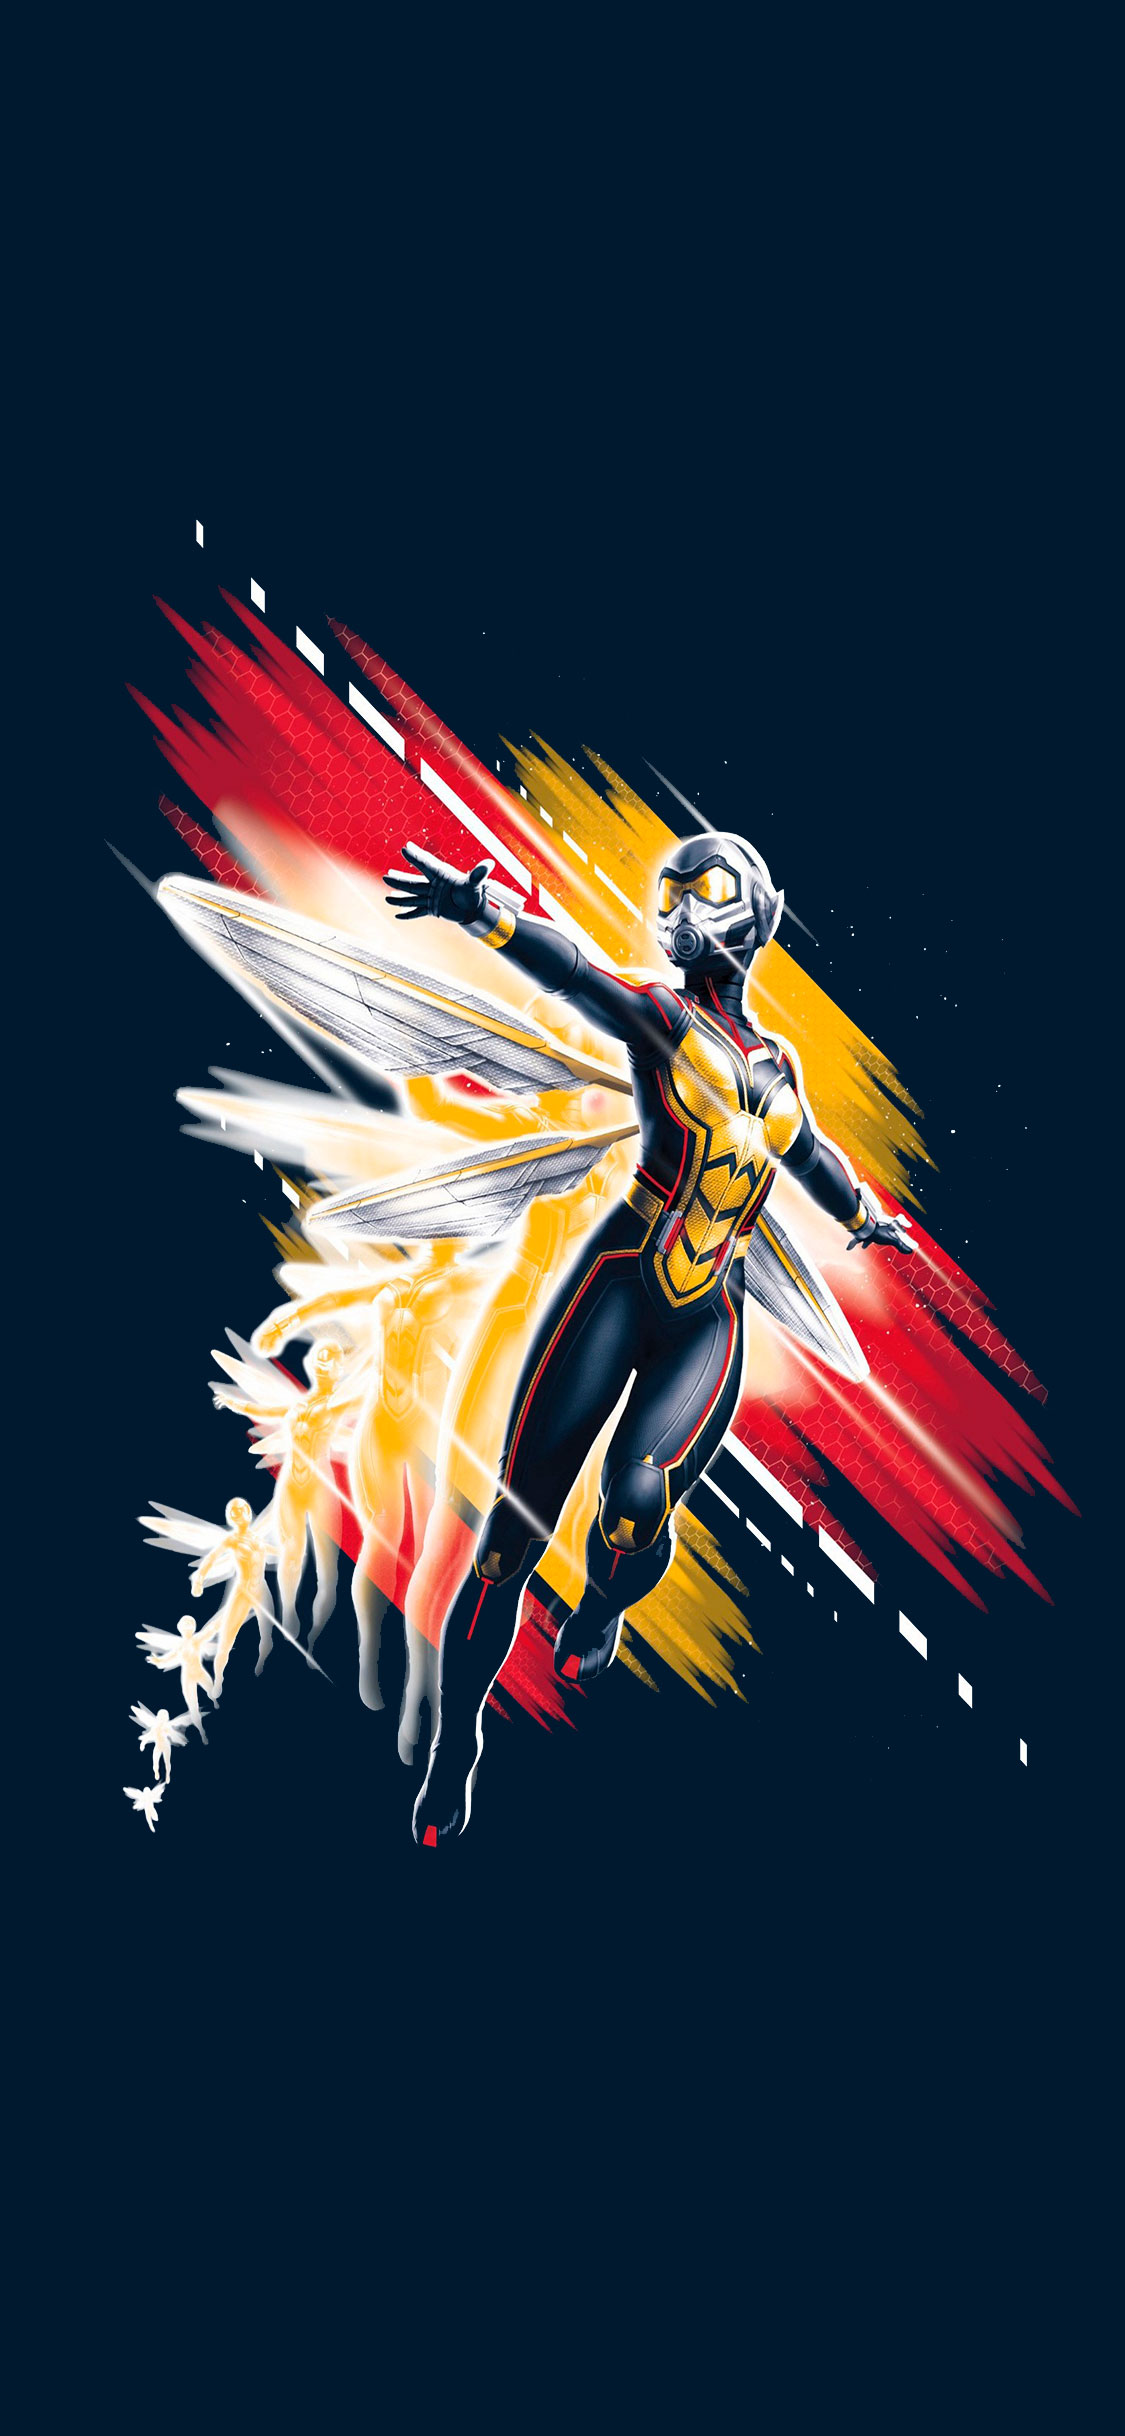 iPhone wallpaper ant man wasp Fonds d'écran iPhone du 15/06/2018